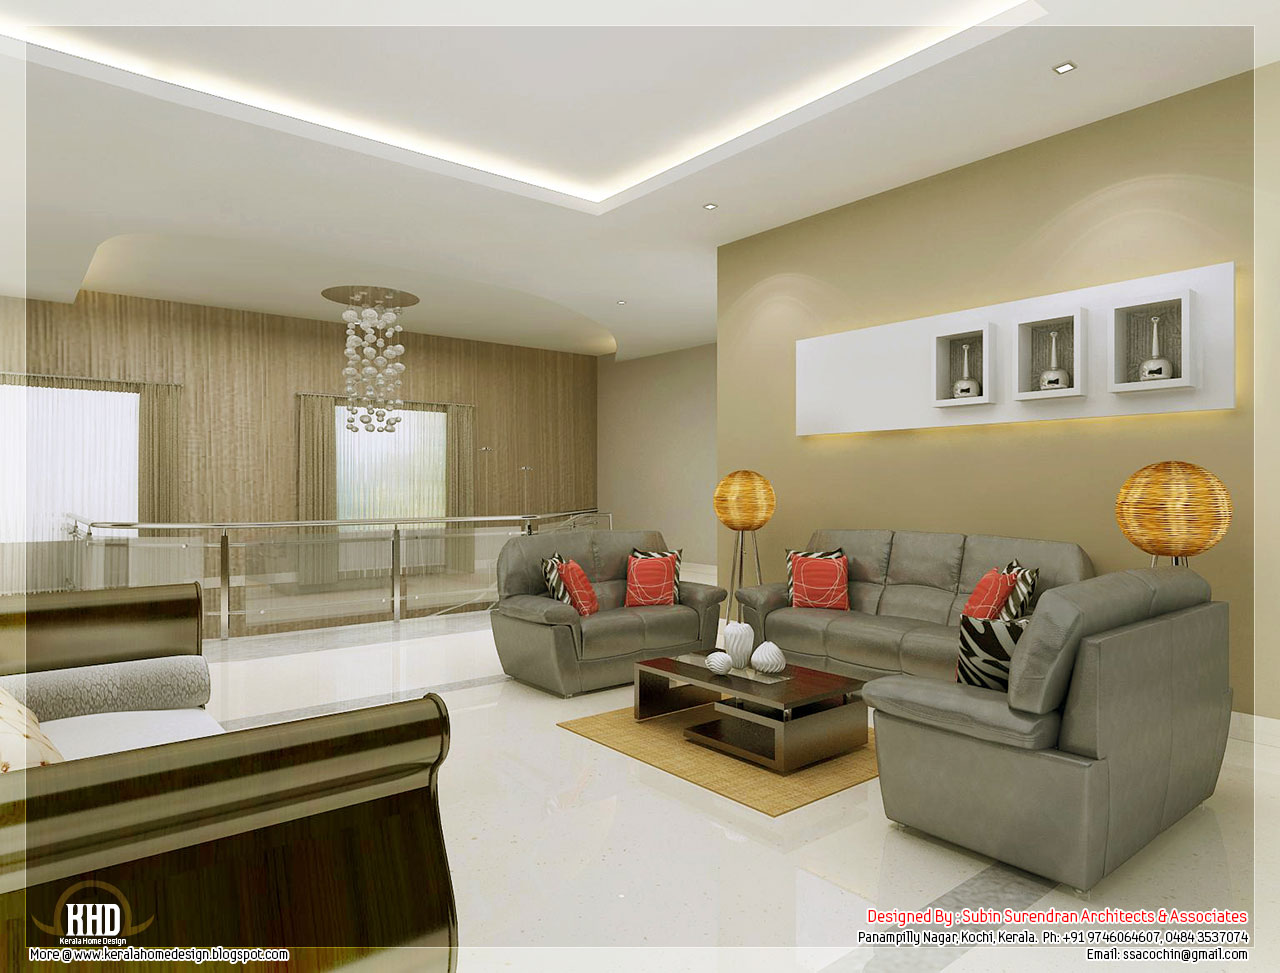 Awesome 3d interior renderings kerala home design and for Indian living room interior design photo gallery